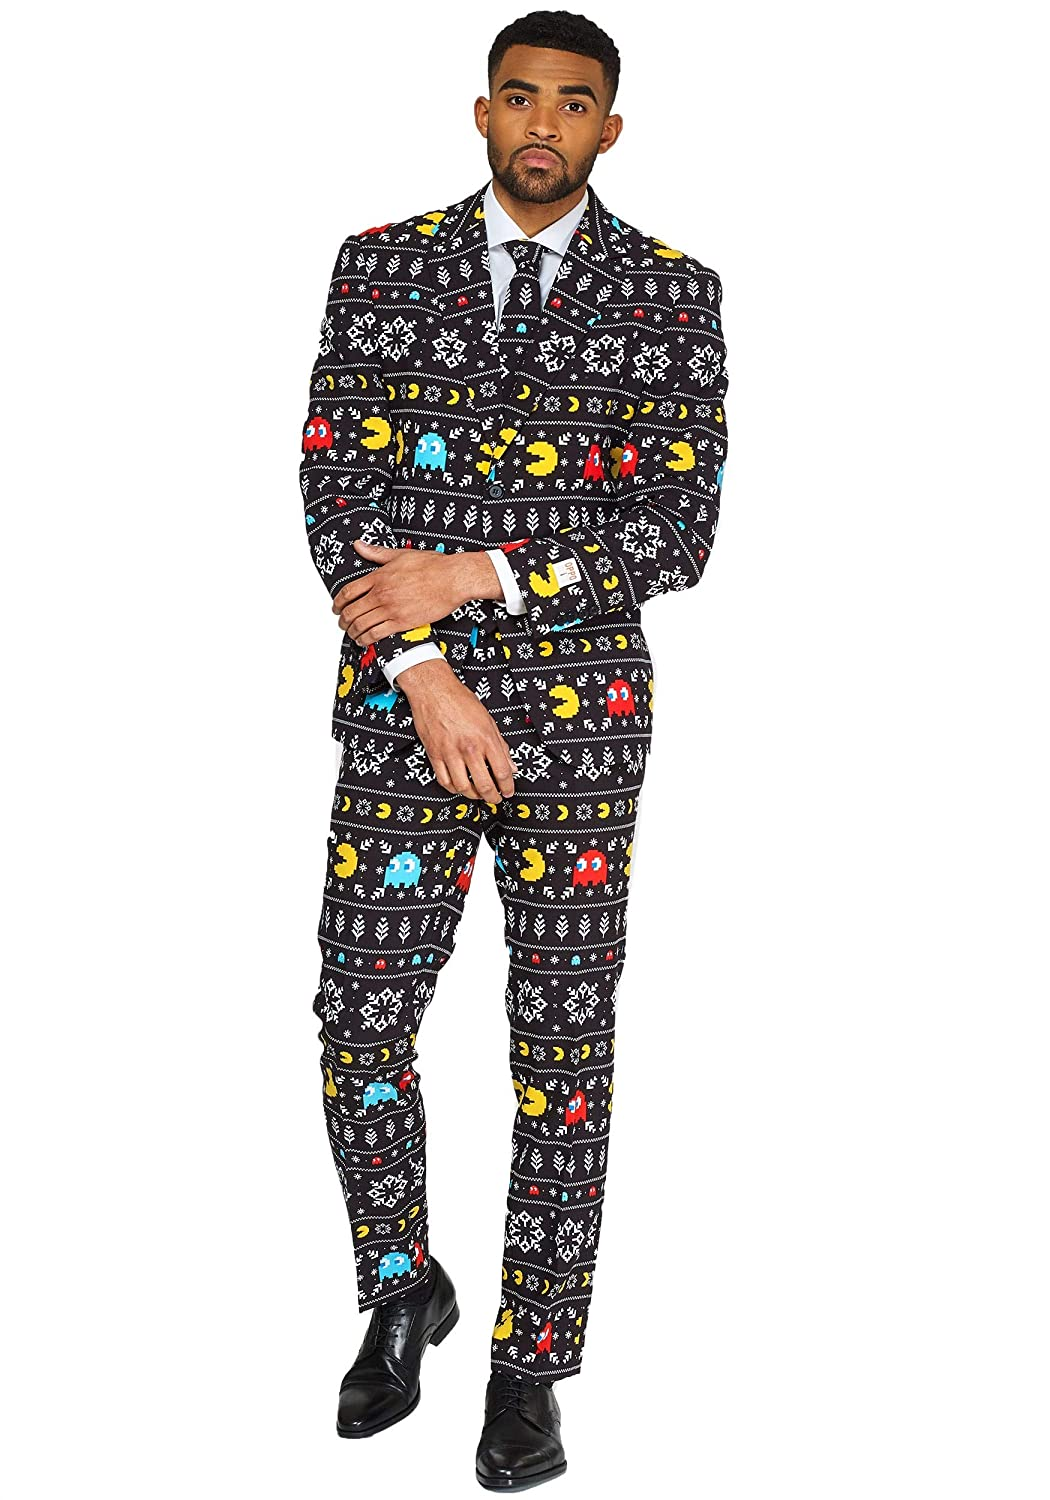 Opposuits Official STAR WARSTM Suit - Starry Side Costume Comes With Pants, Jacket and Tie, Starry SideTM, 58 Pac-man